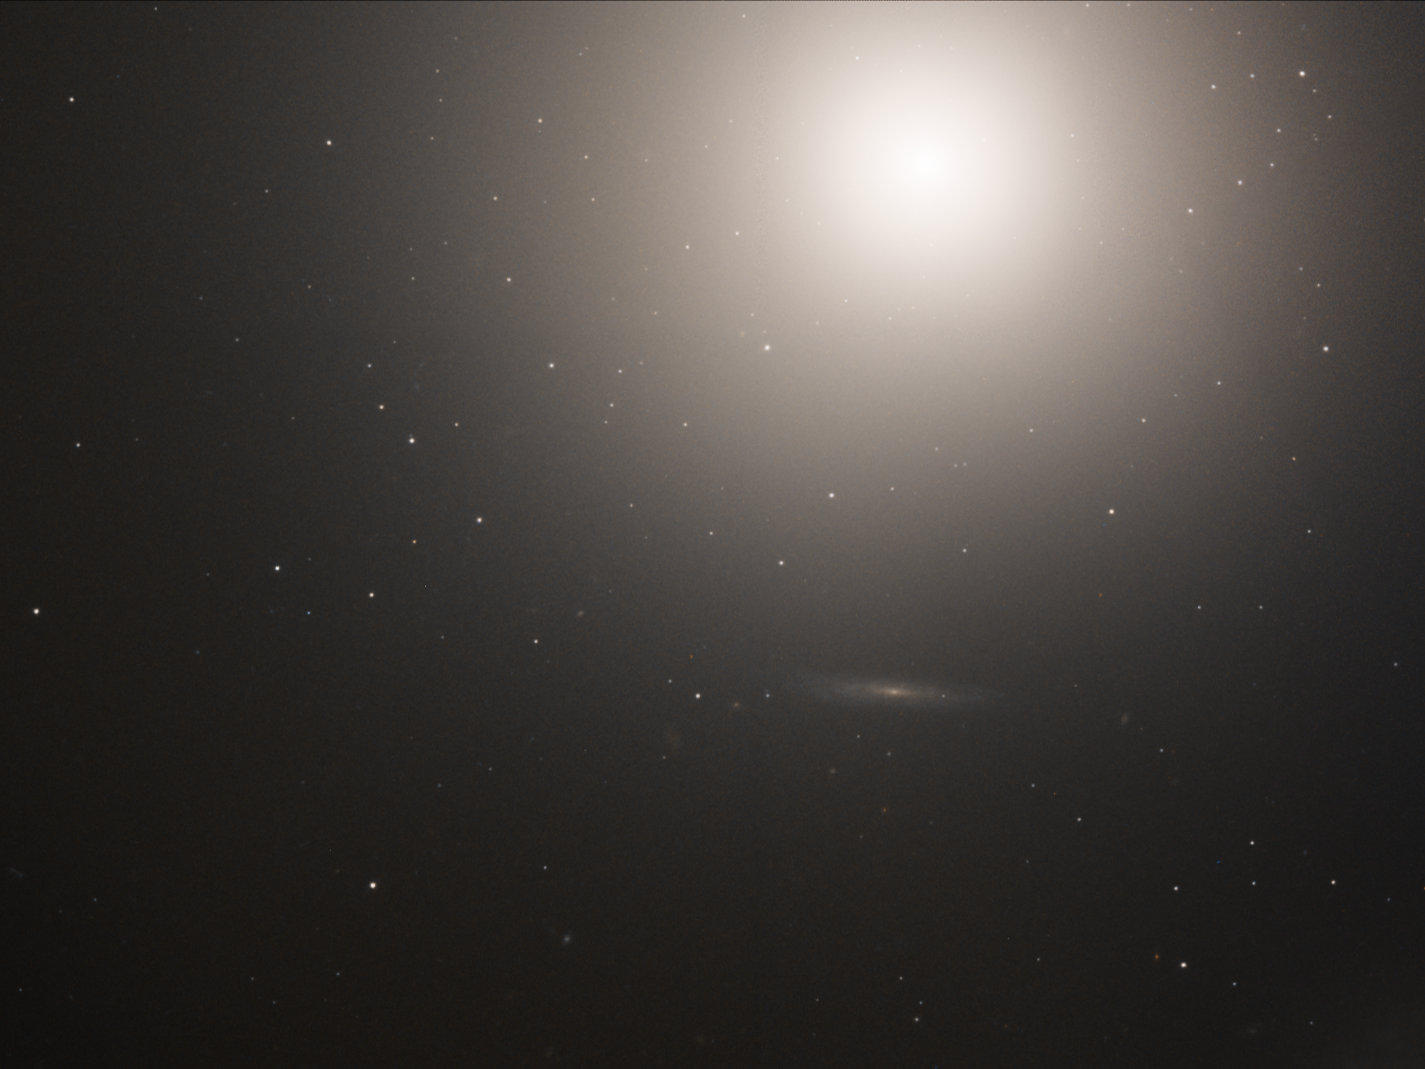 A galaxy discovered in 1781